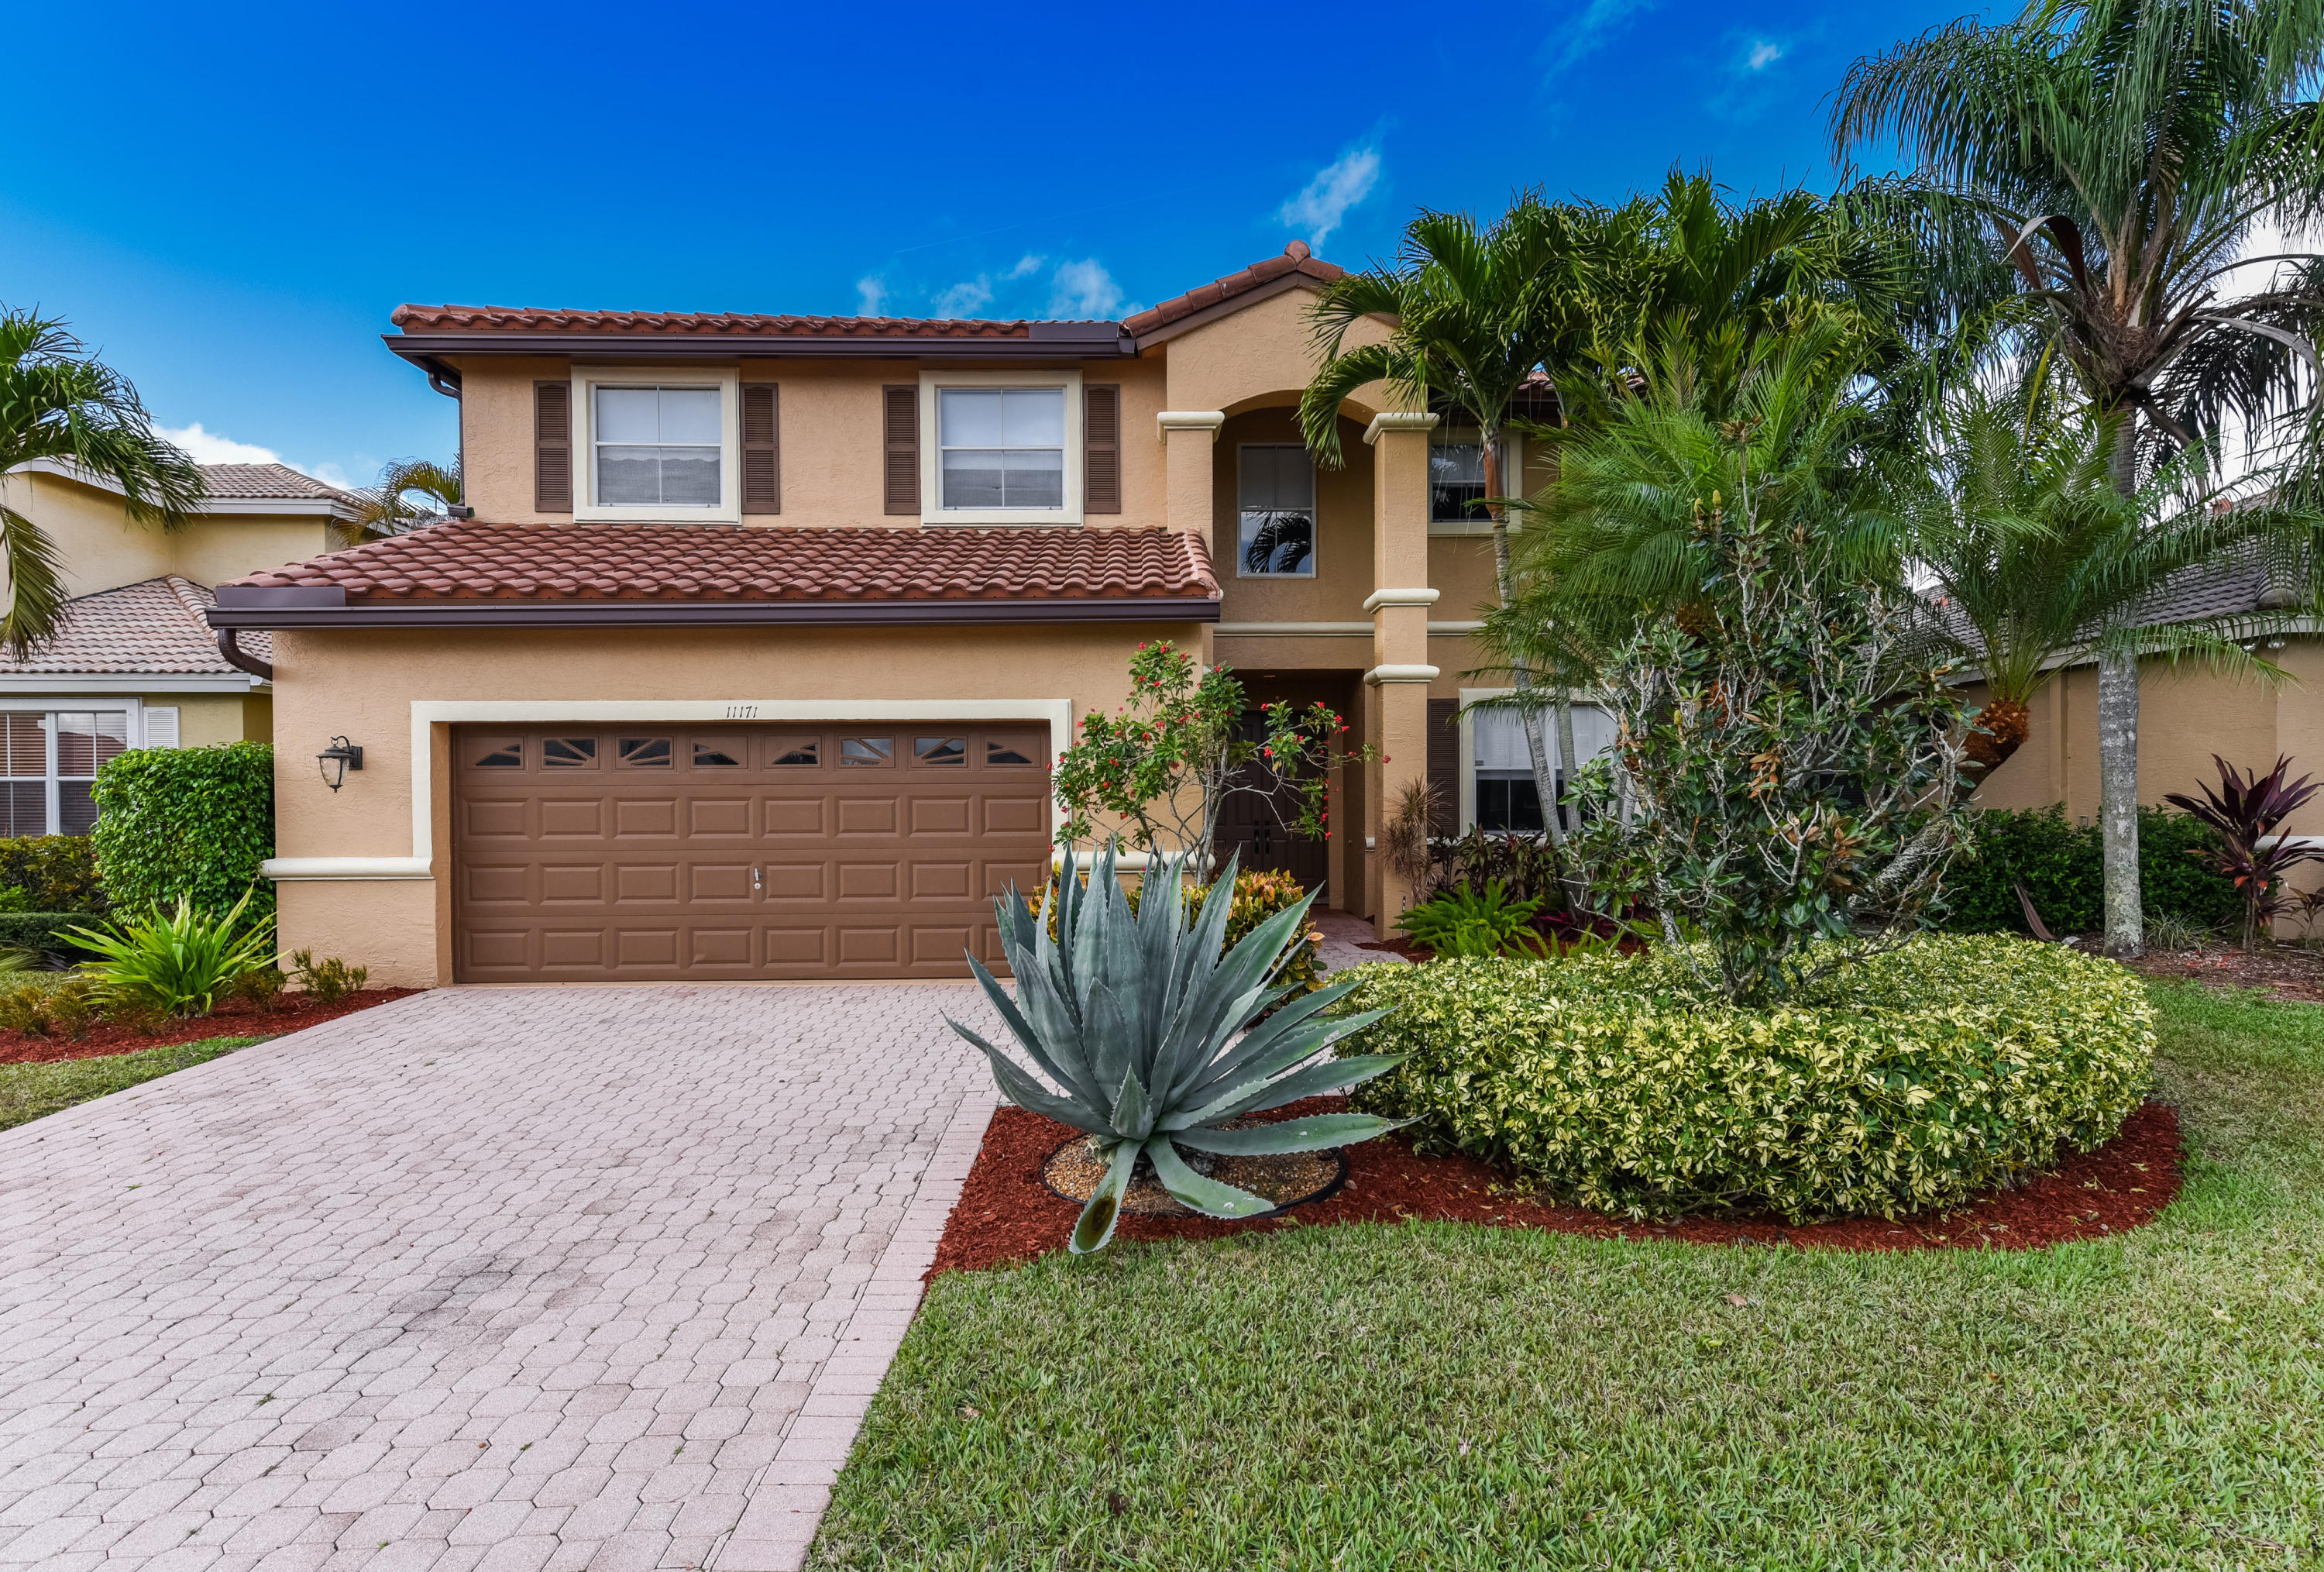 Photo of 11171 Sea Grass Circle, Boca Raton, FL 33498